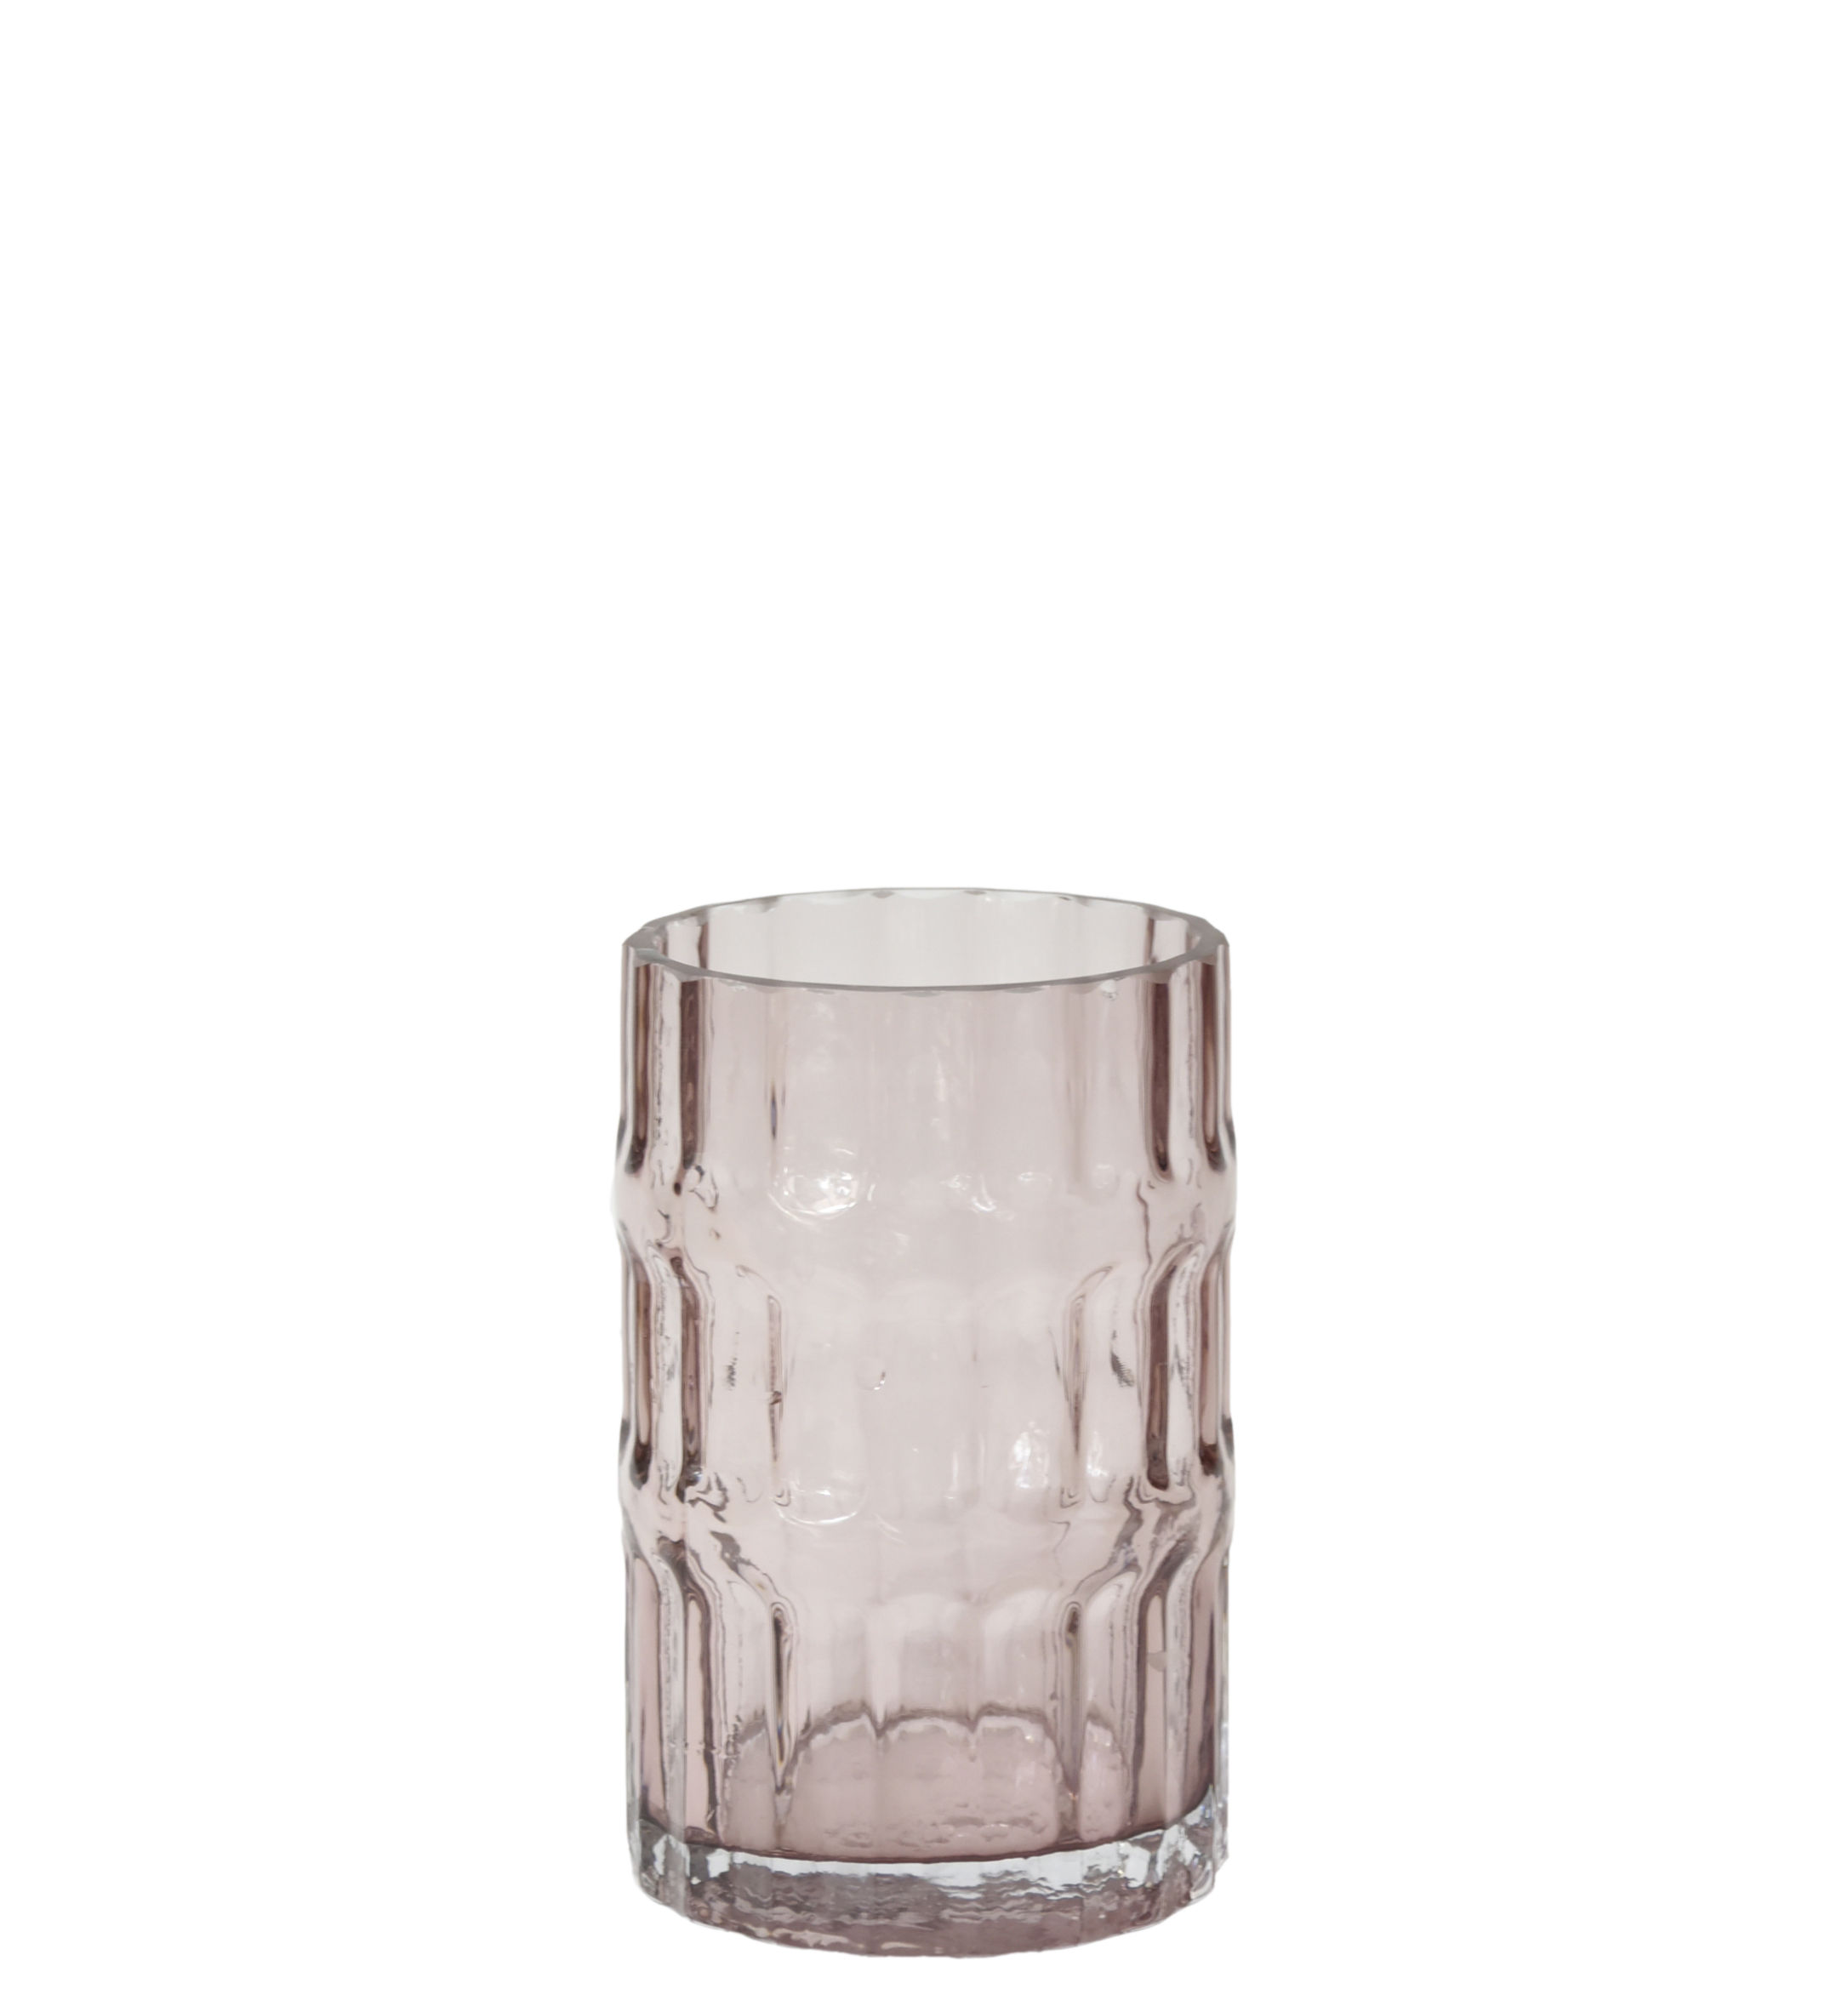 Decoration - Vases - Ondin Small Vase - / Ø 11 x H 18 by ENOstudio - Small / Pink - Coloured glass